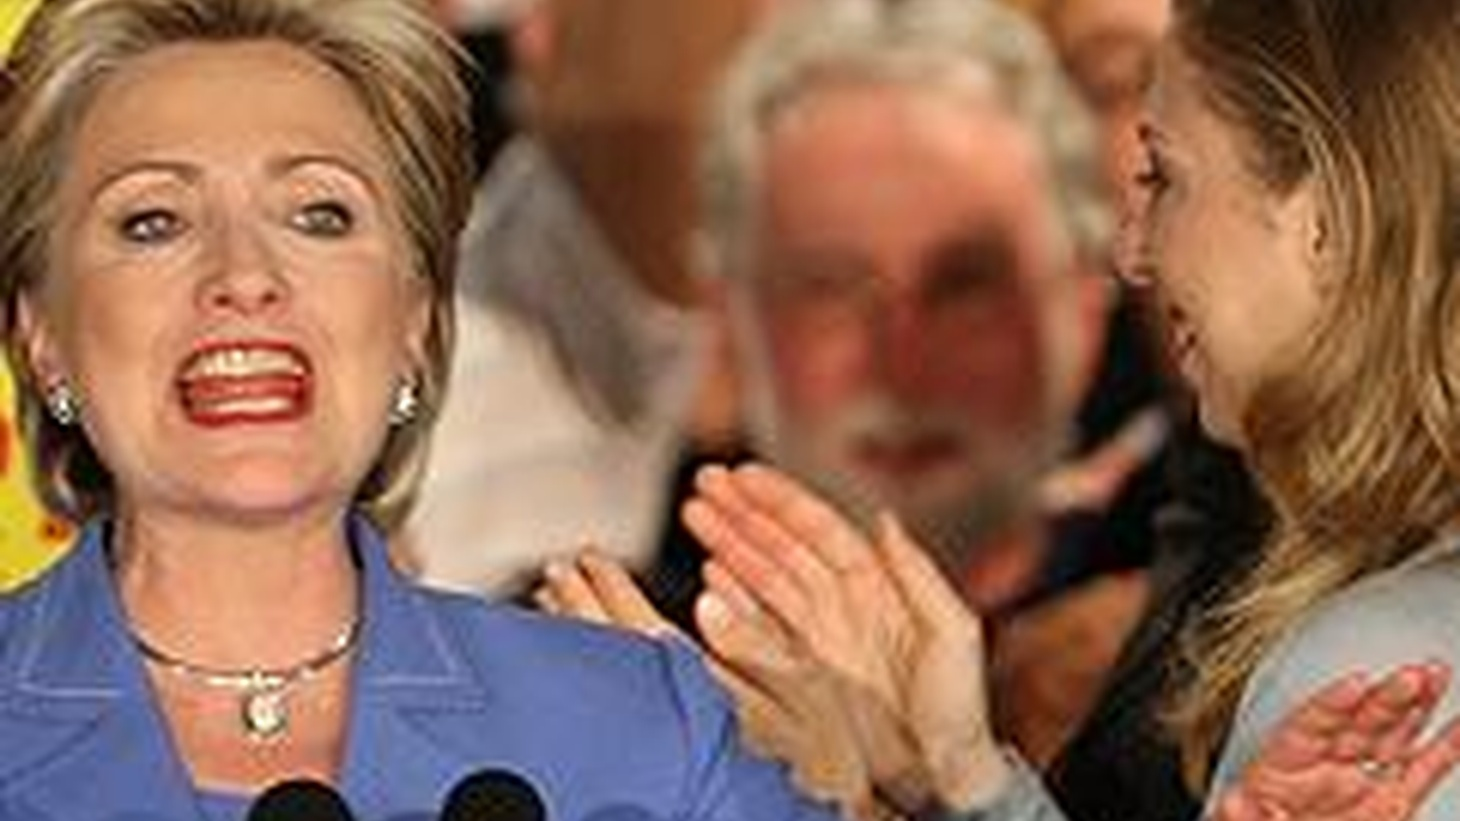 Hillary Clinton is back on the campaign trail, even though former nominee George McGovern says publicly it's time for her to quit. We update last night's results and today's developments. Also, relief is slow to reach Myanmar, and Vadimir Putin steps down...or does he?